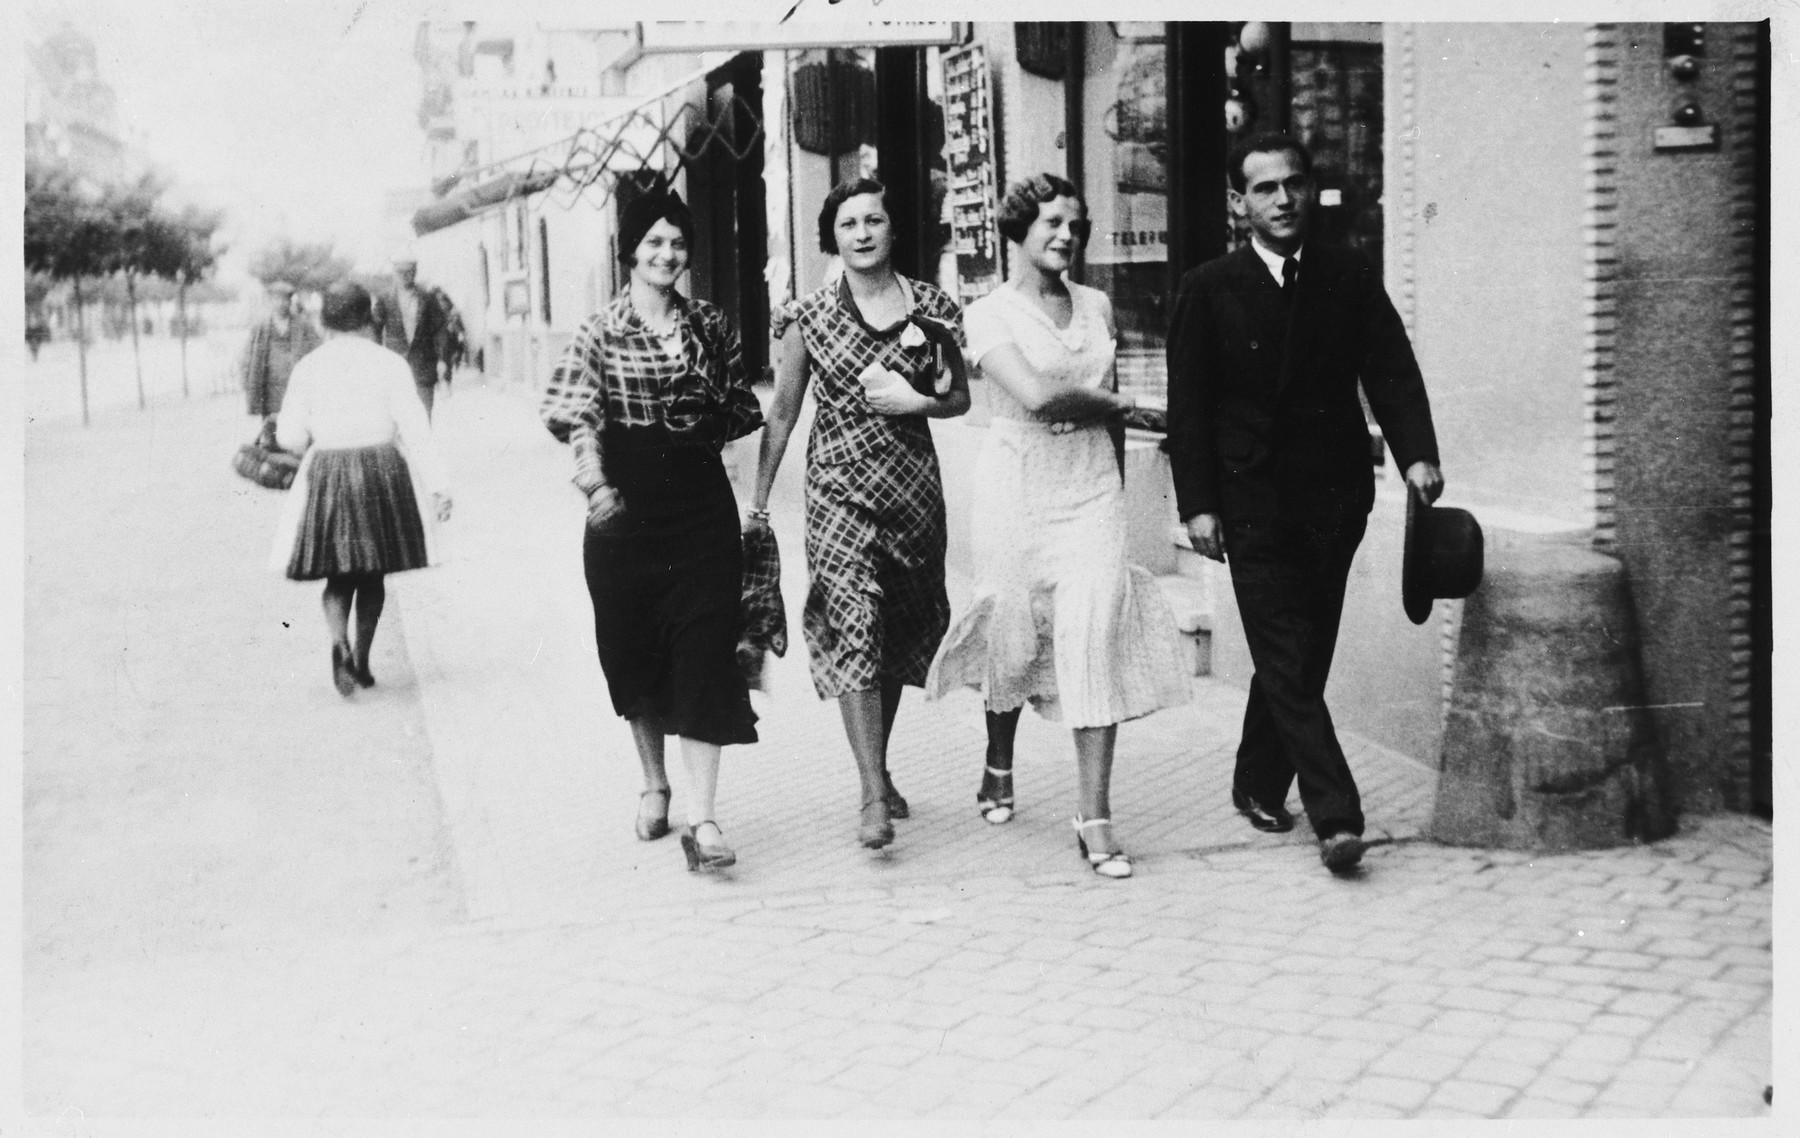 The donor's mother, Hildegard Hitschke-Stkutecka (second from right), with friends in her home town.